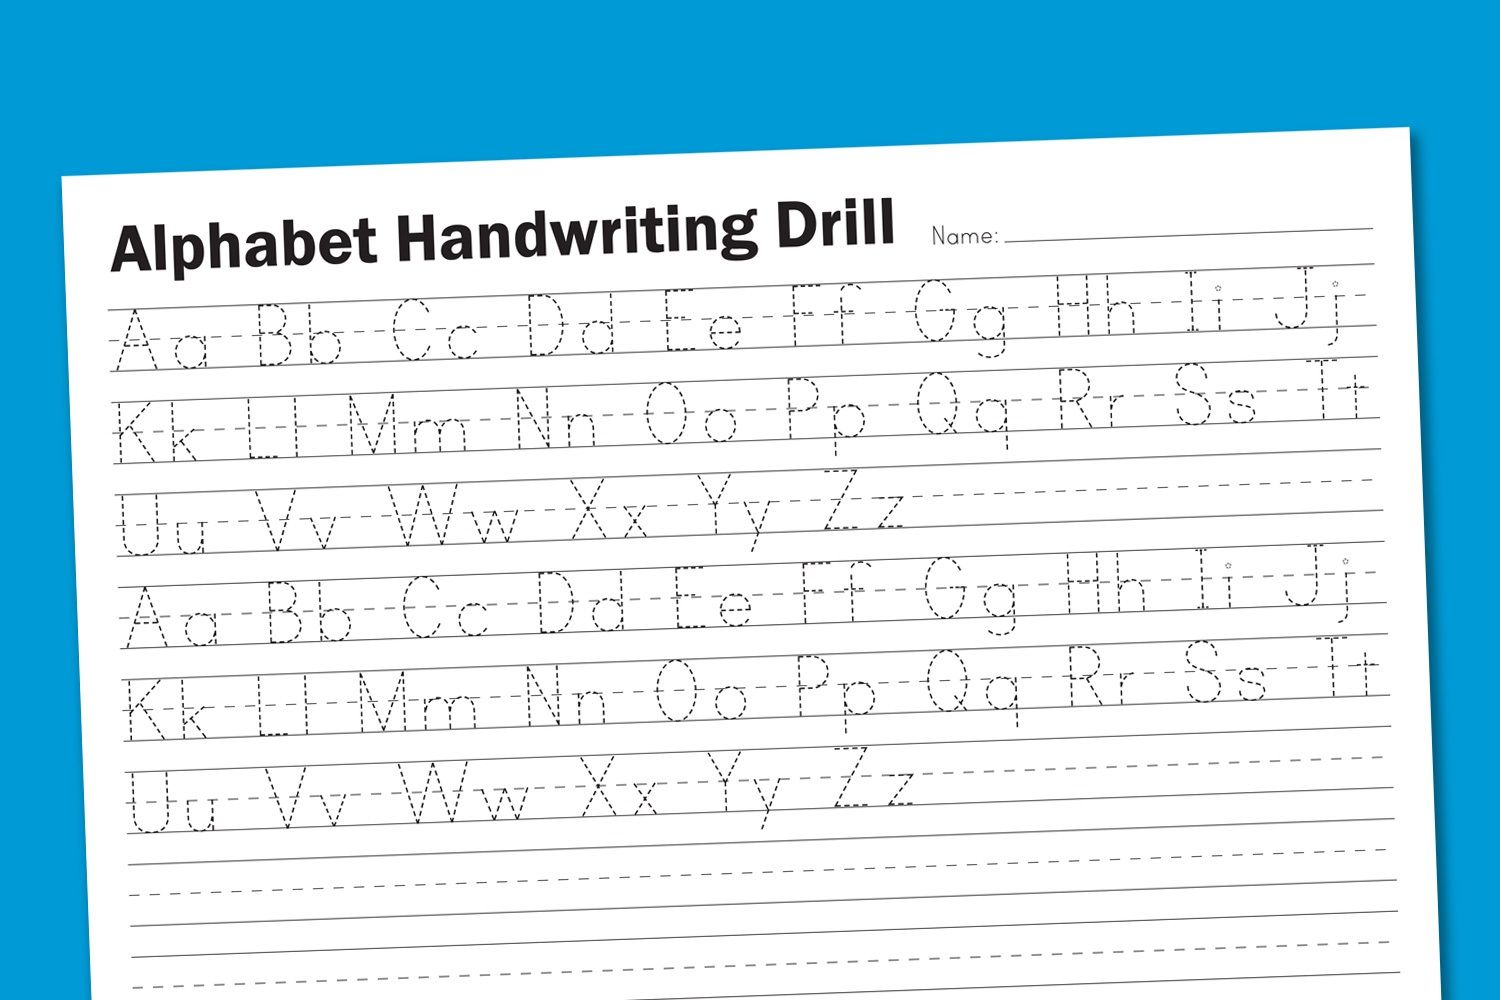 Printables Handwriting Worksheets Free Printable free printable handwriting worksheets scalien alphabet davezan